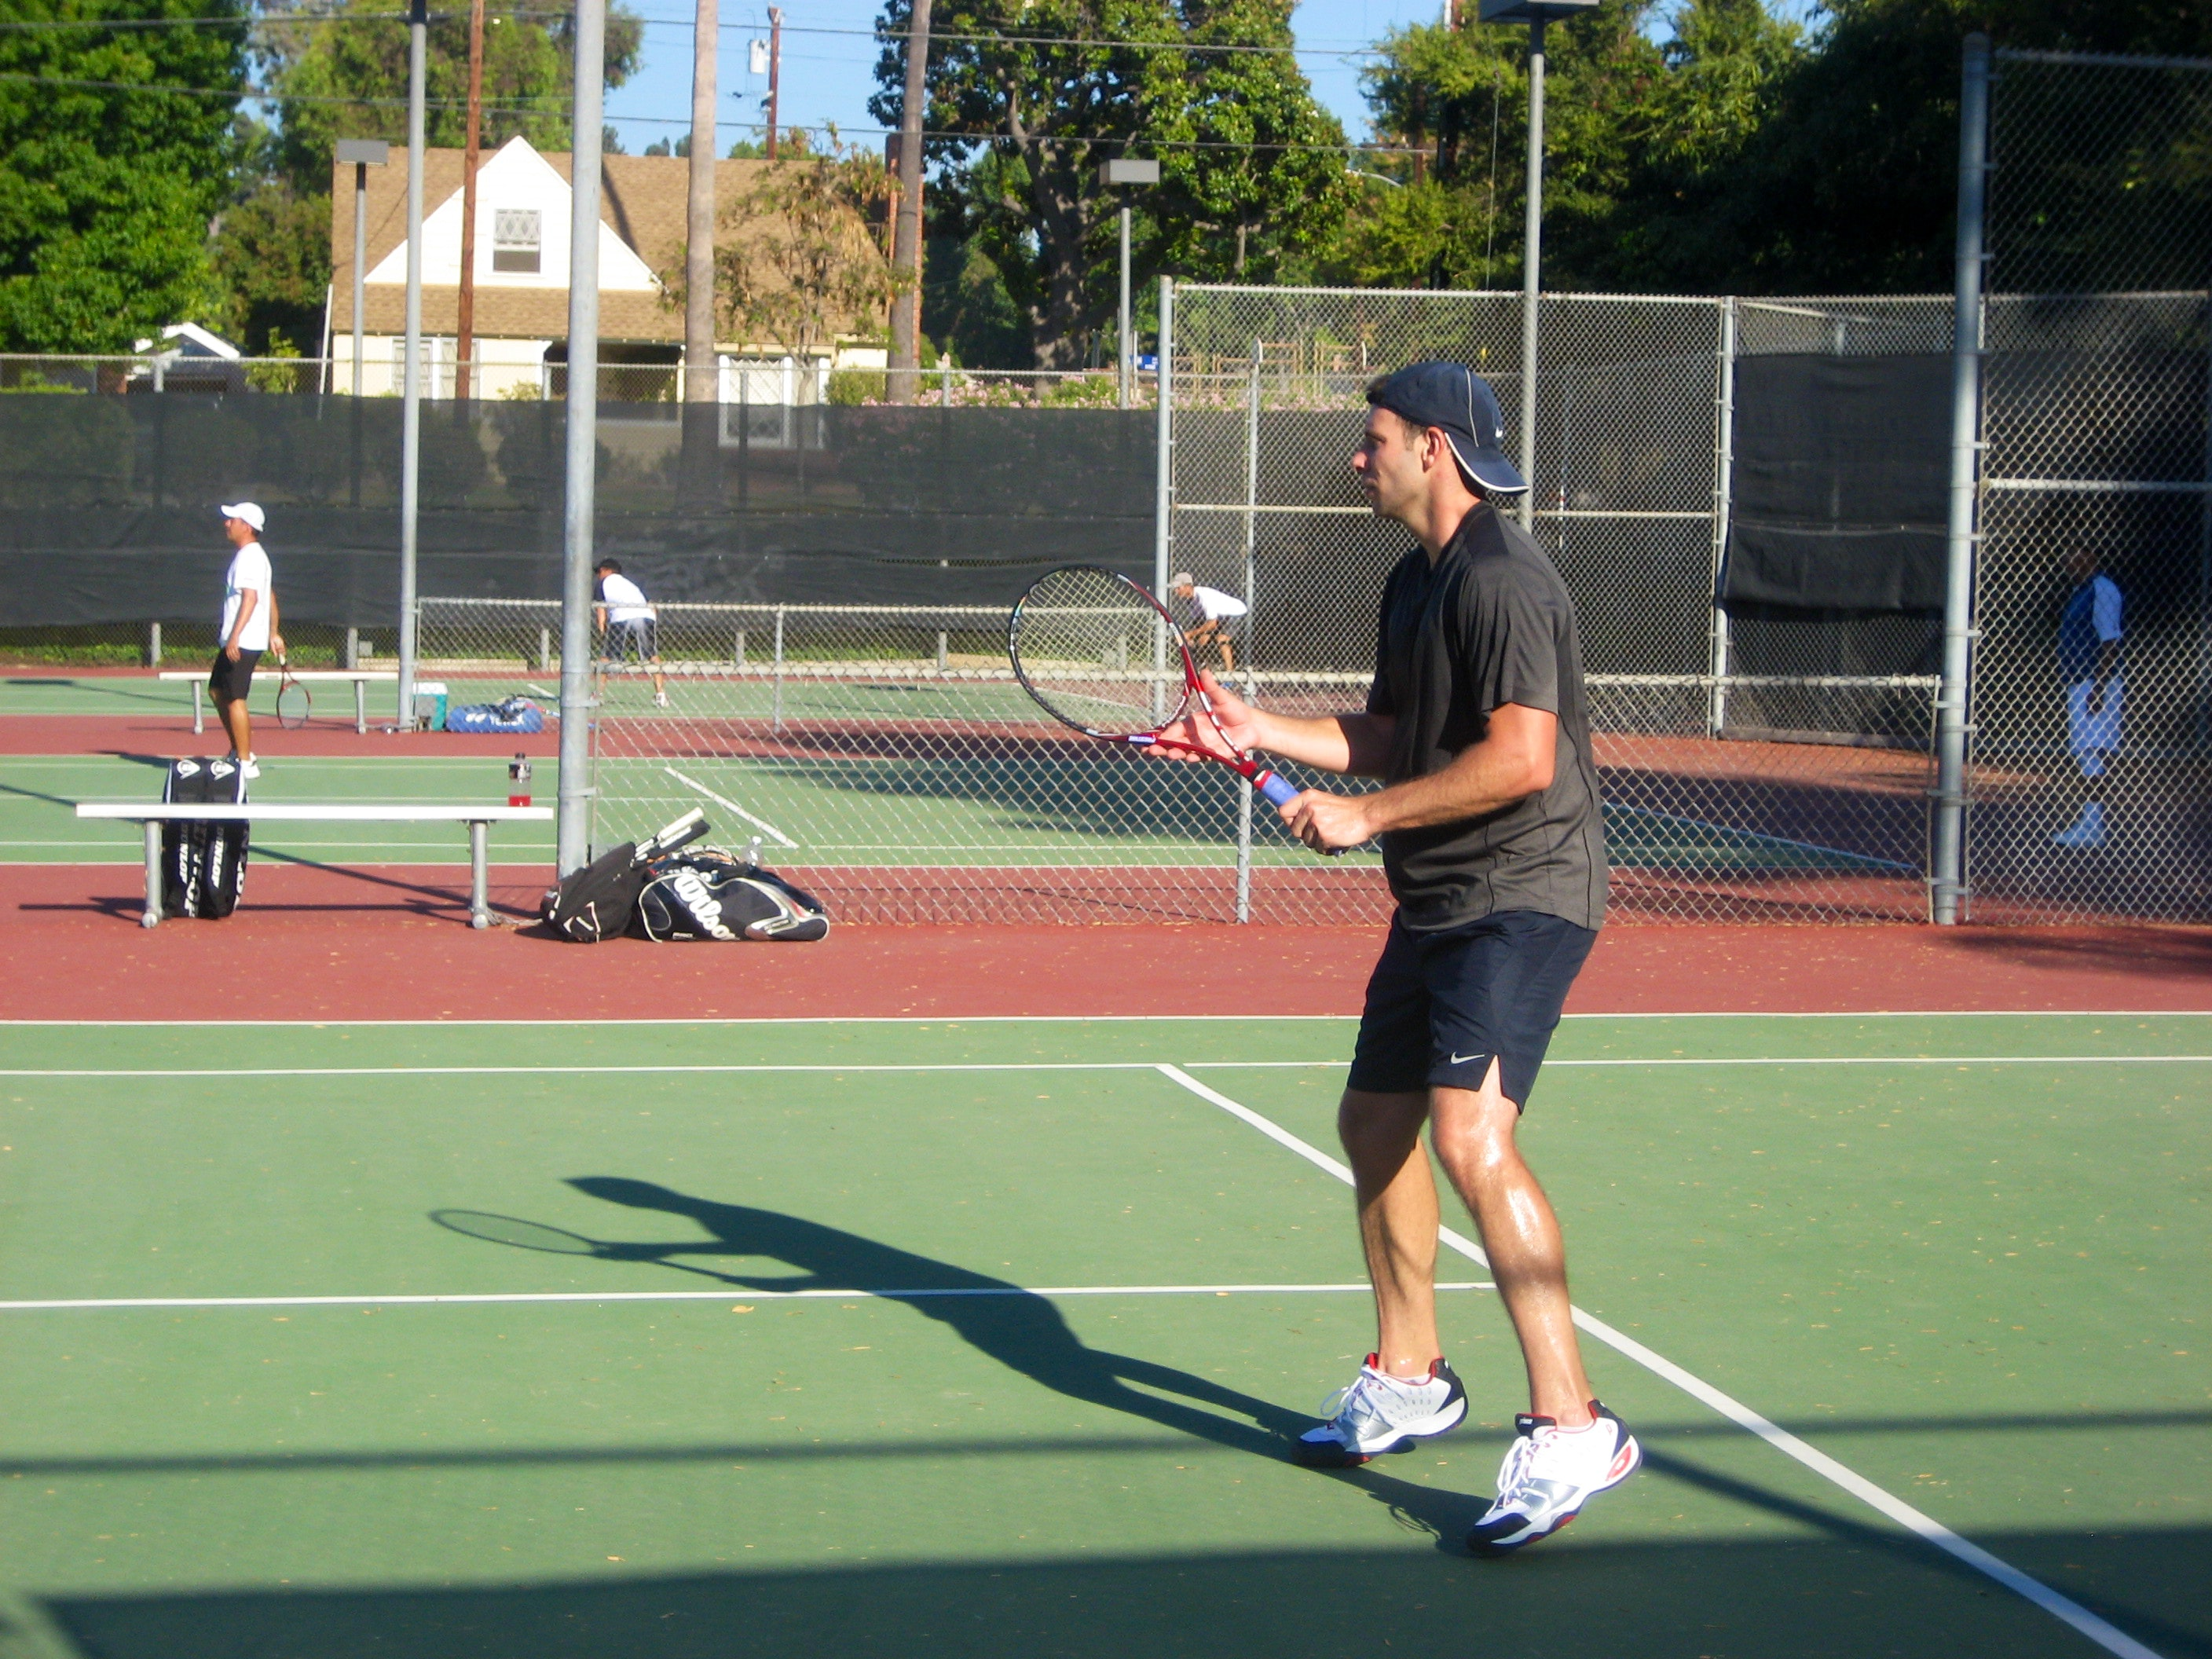 Michael T. teaches tennis lessons in San Dimas, CA